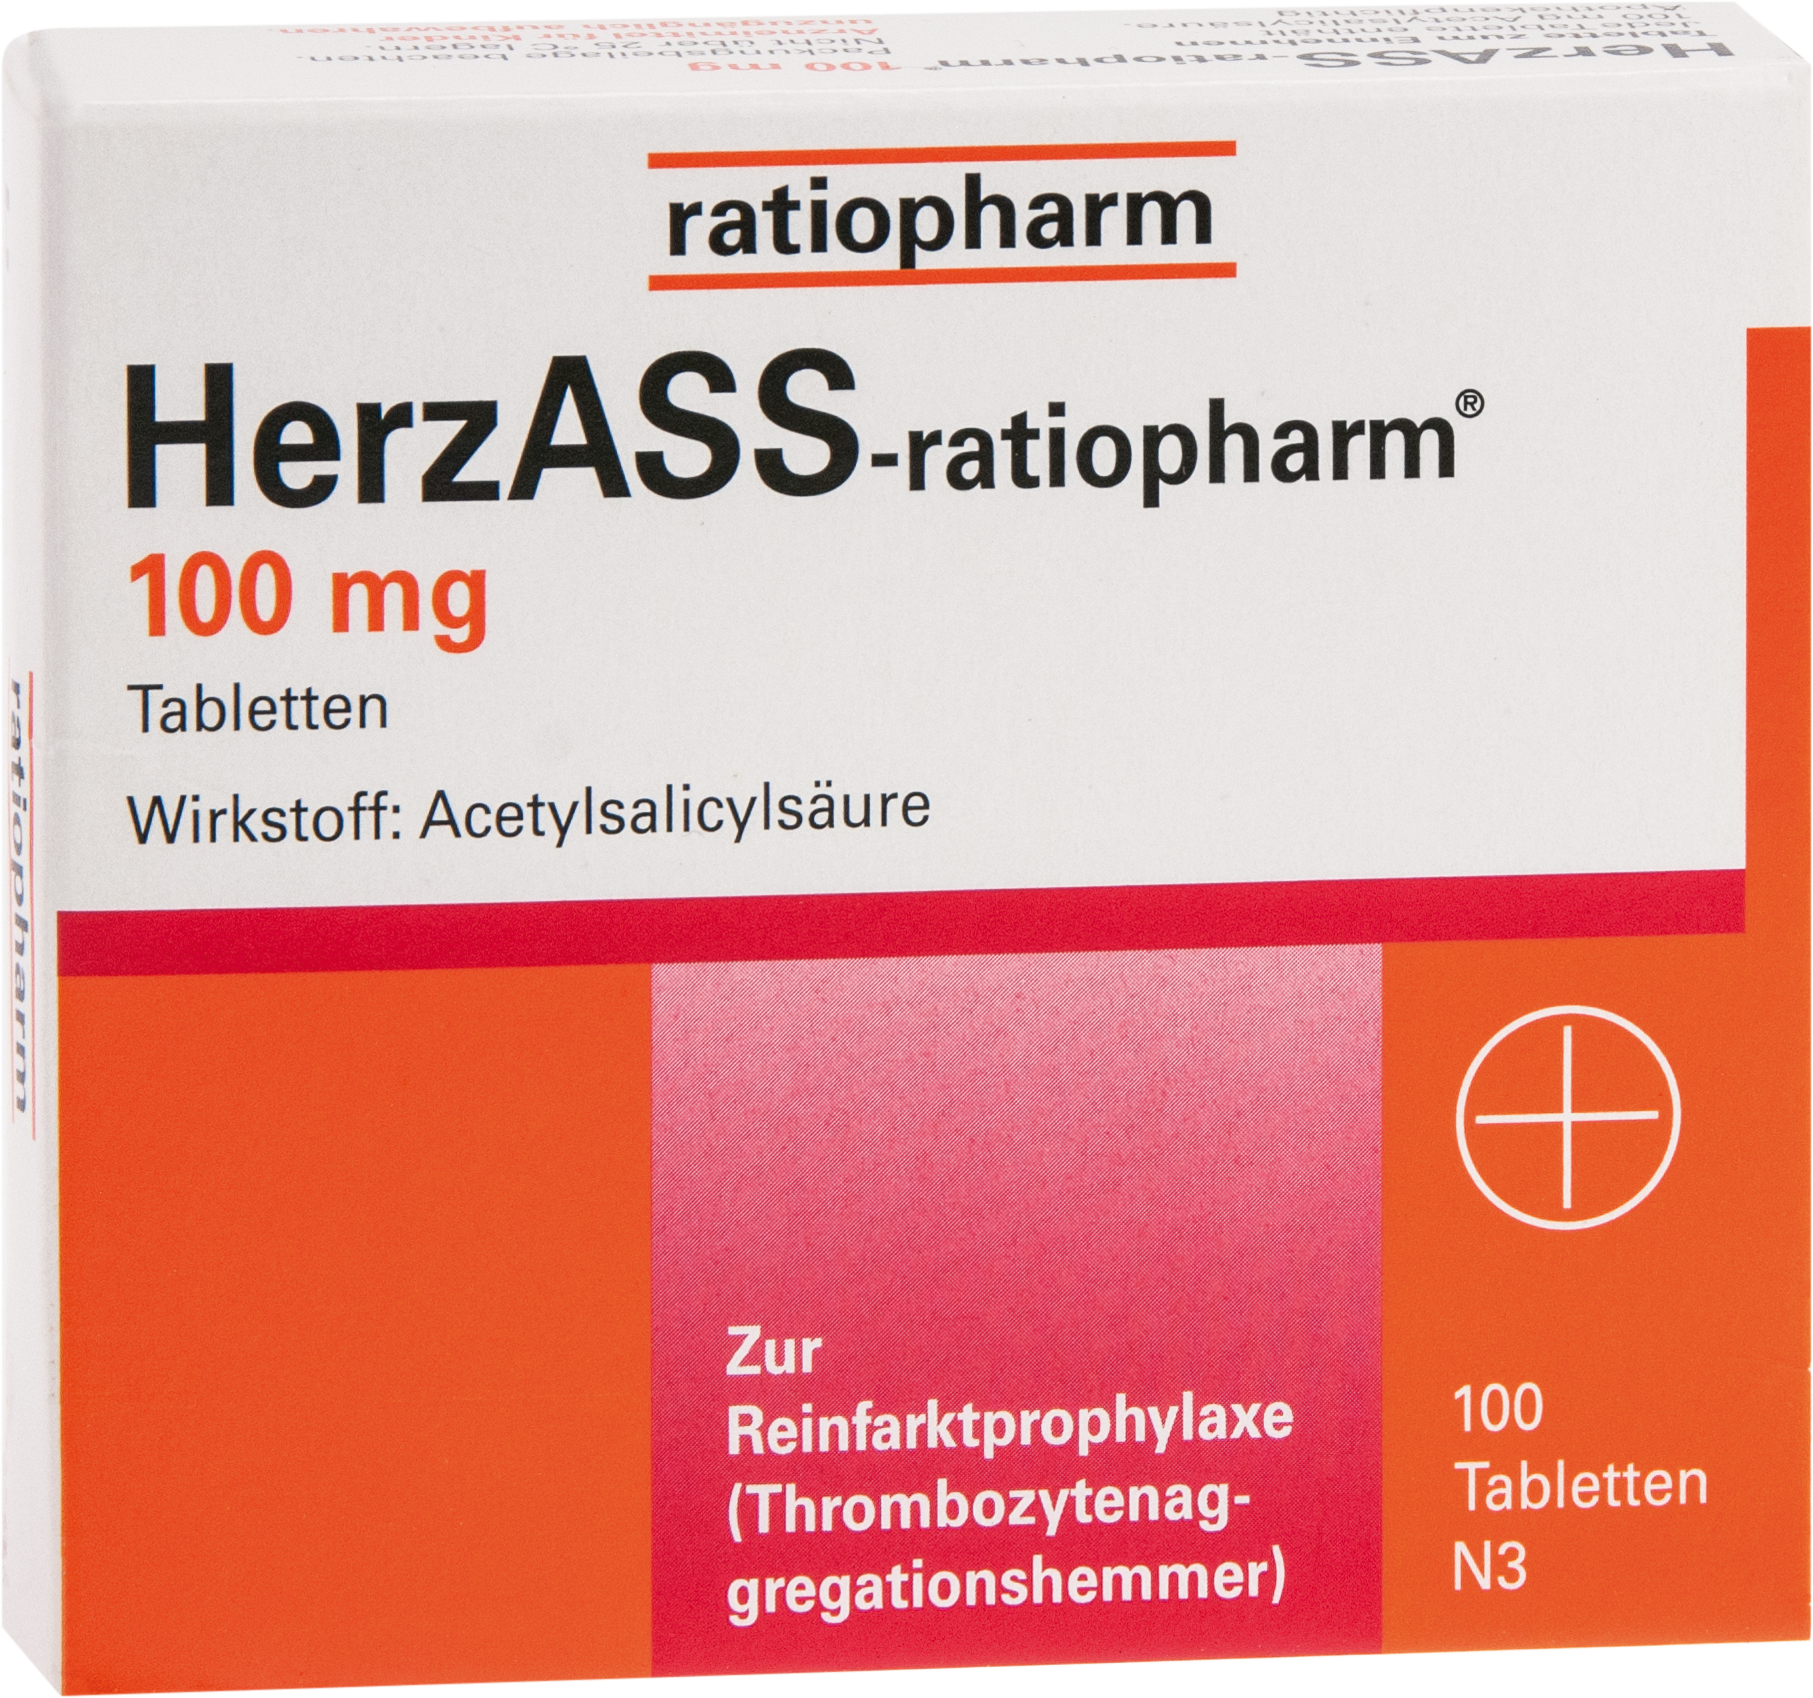 HerzASS-ratiopharm 100 mg